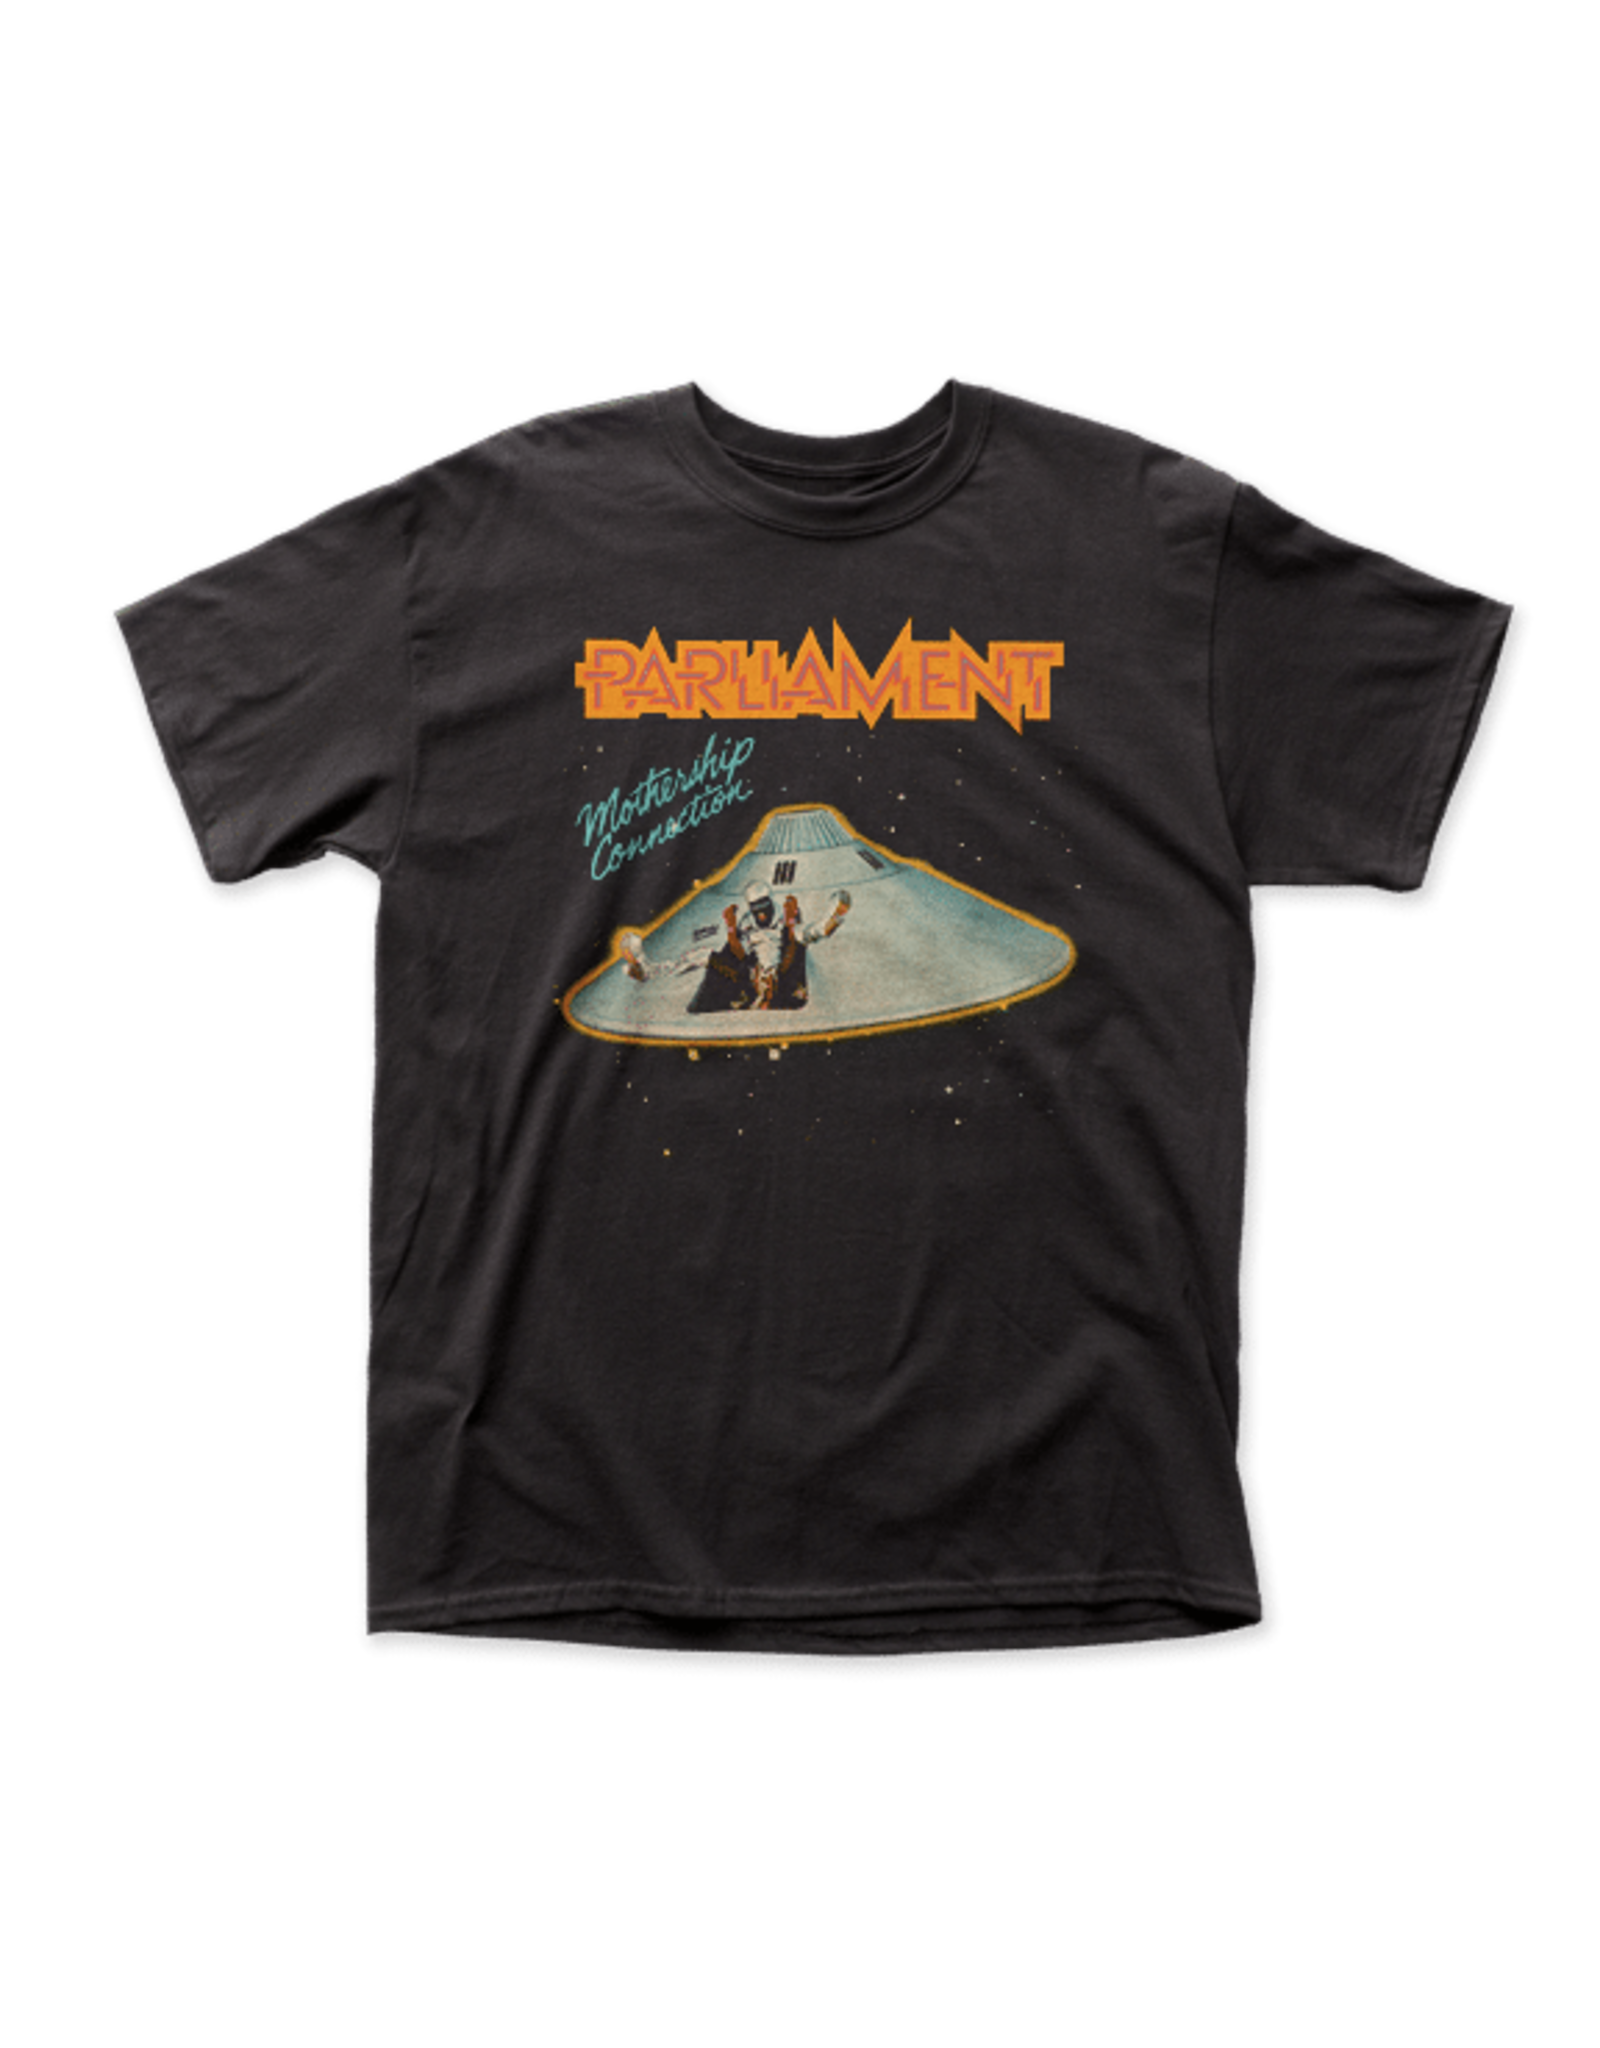 "Parliament ""Mothership Connection"" T Shirt"